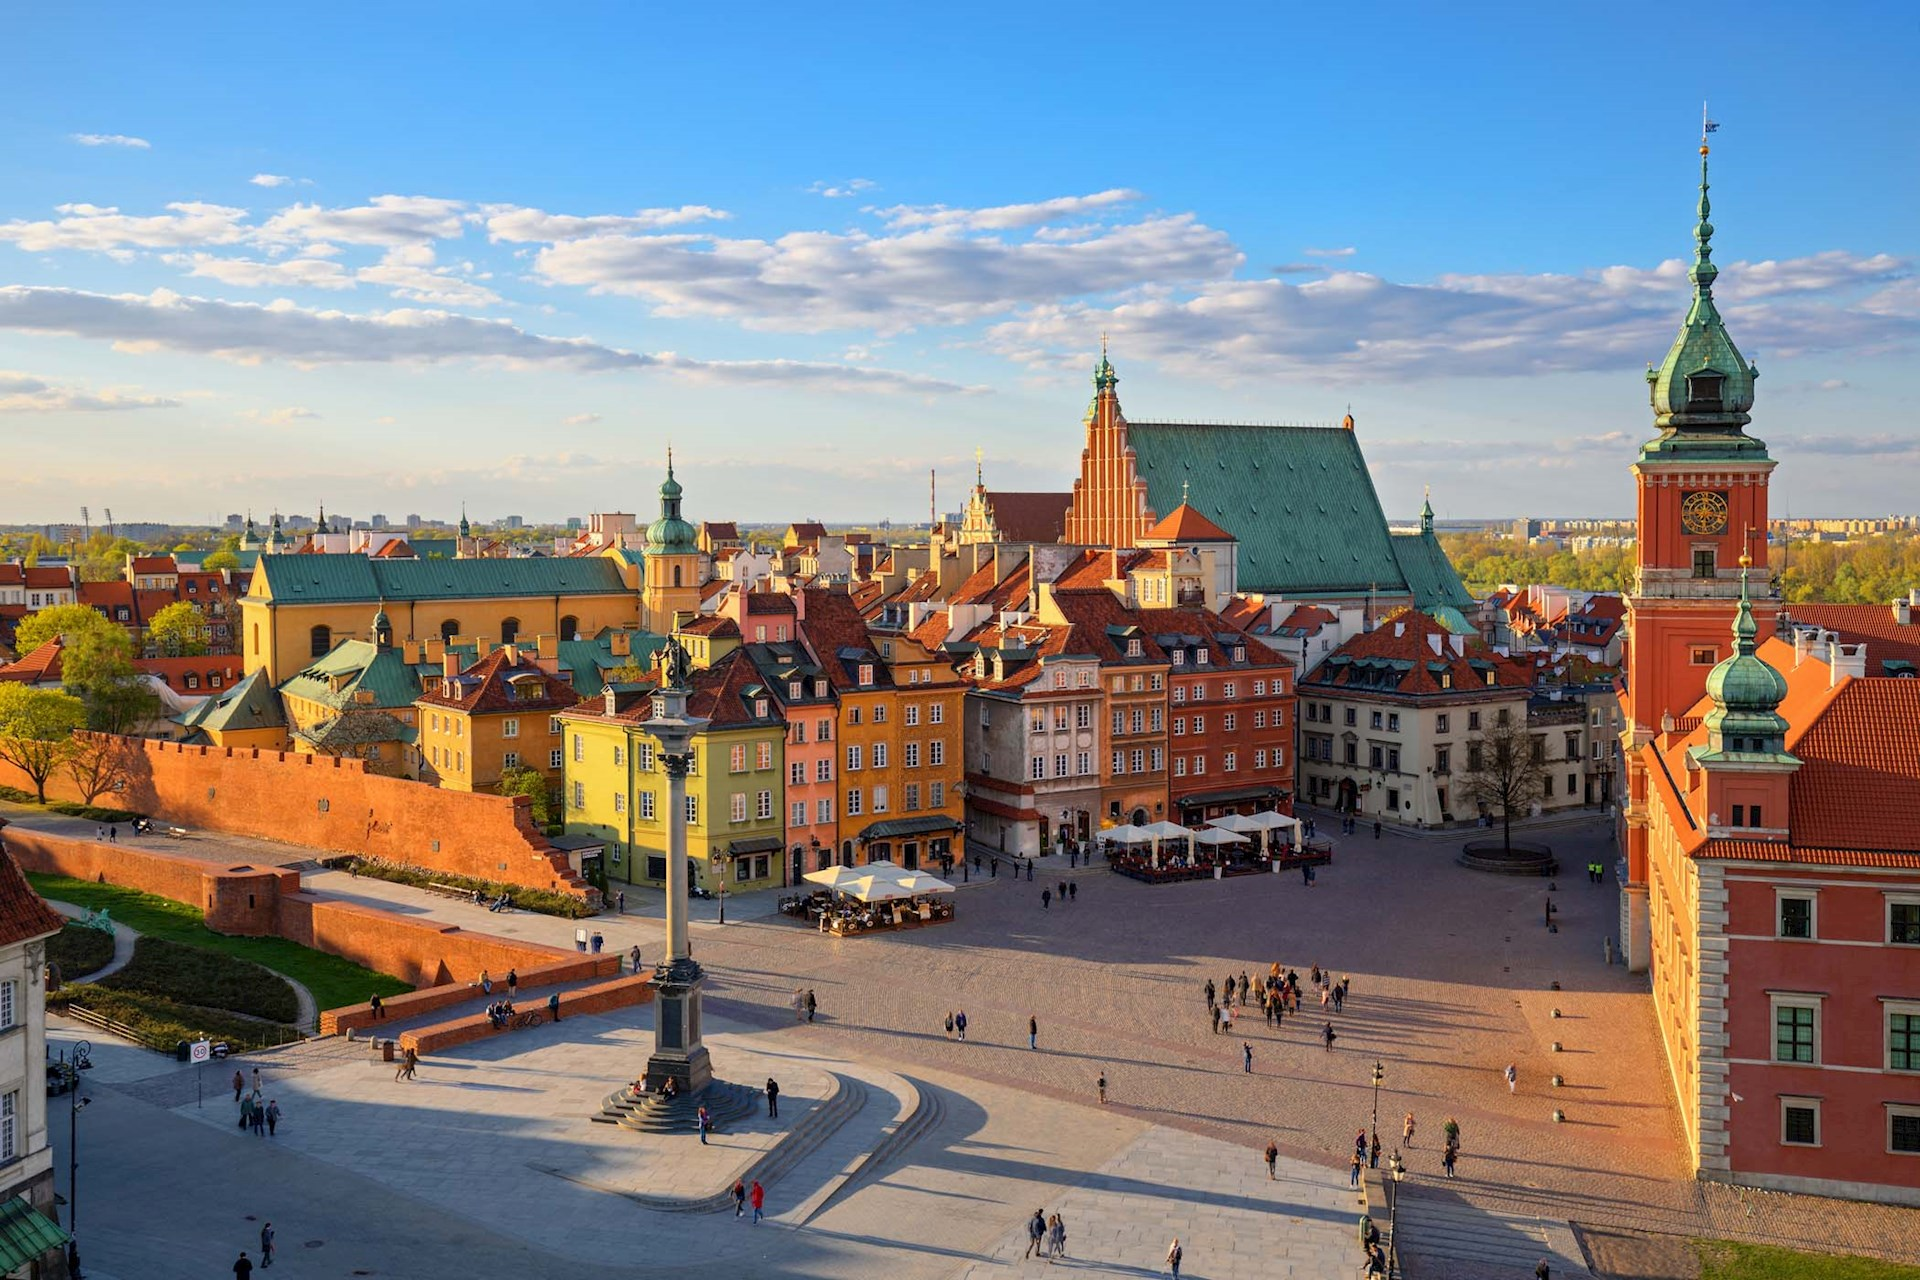 aeriel view of old city in Warsaw